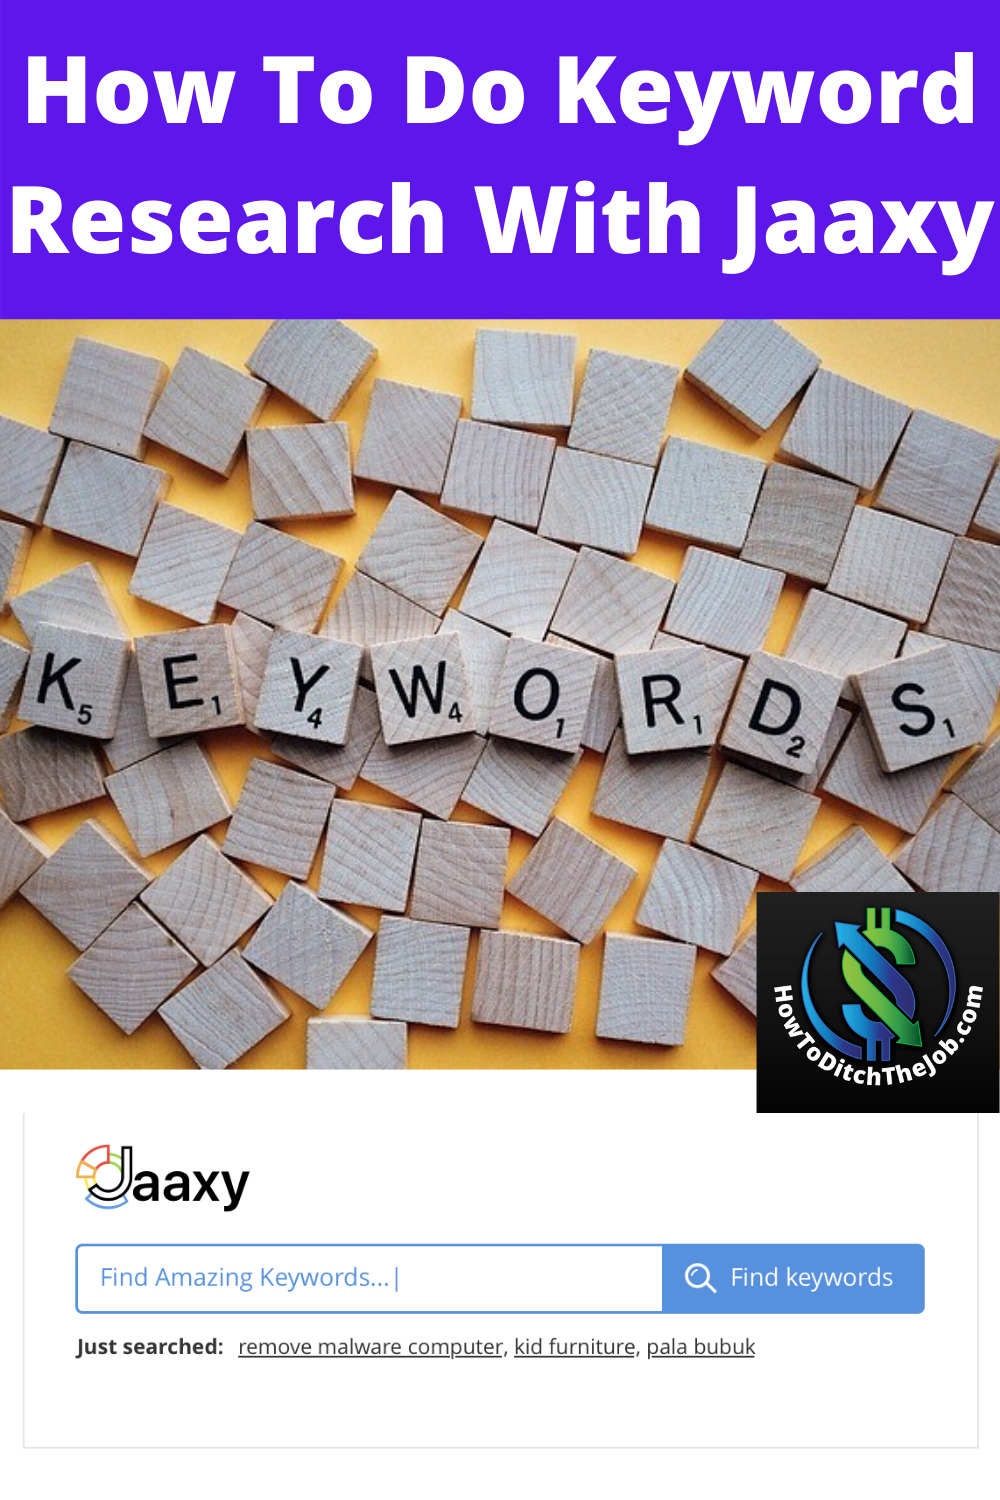 How To Do Keyword Research With Jaaxy